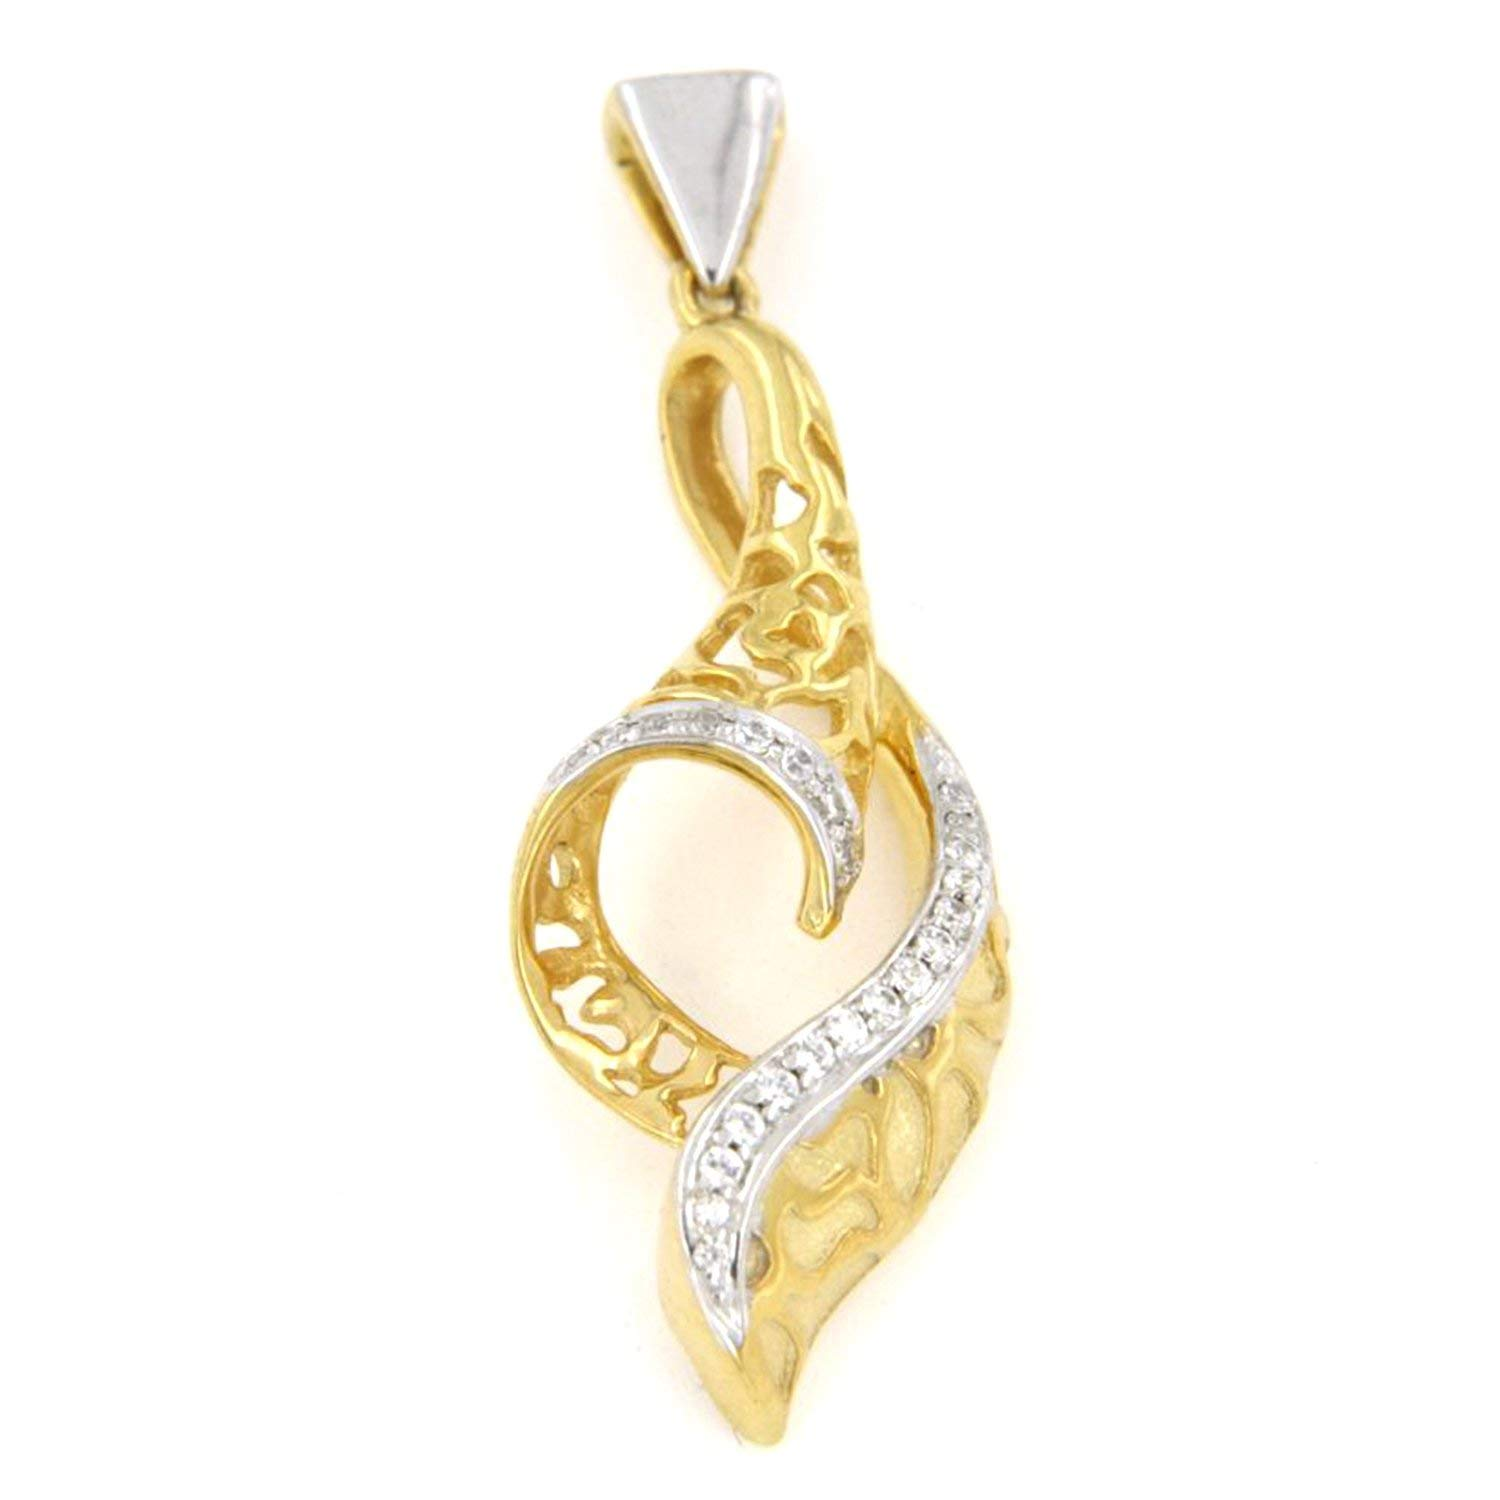 AT Jewels 14K Two Tone Gold Over 925 Sterling Silver Round Cut Cubic Zirconia Fligree Shank Unisex Pendant